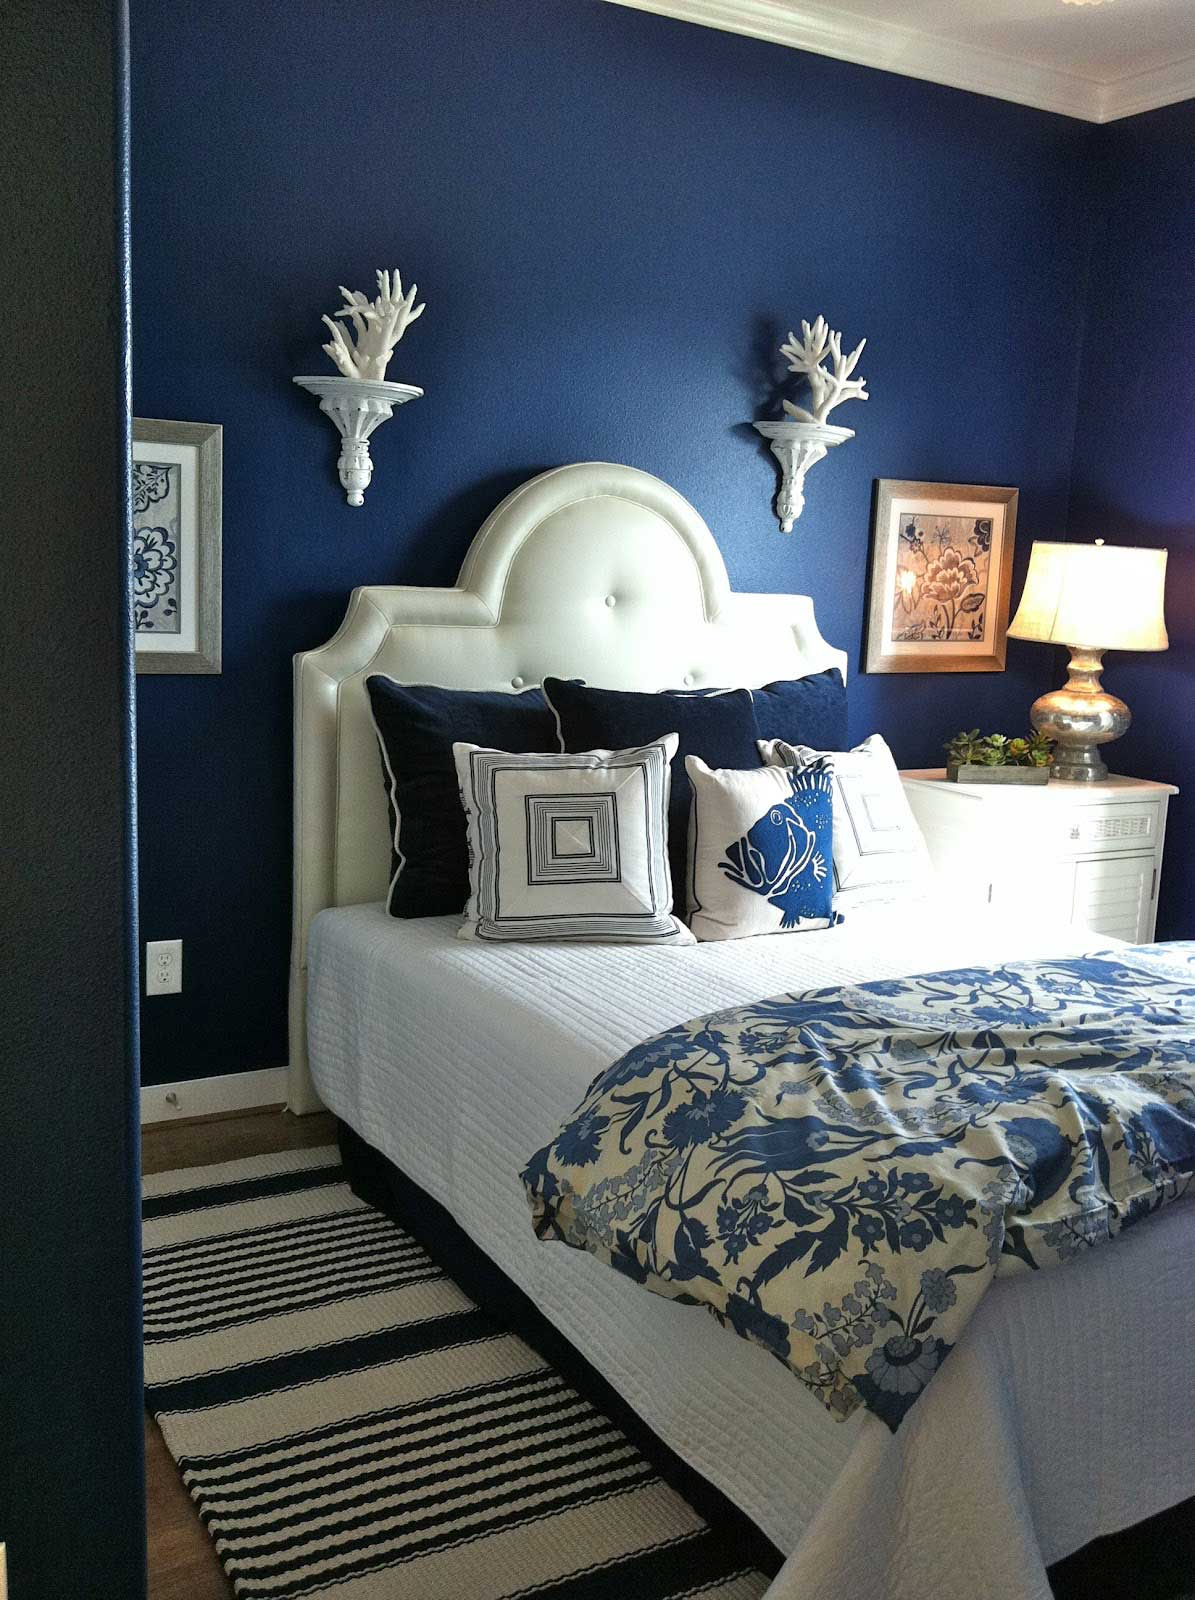 Blue bedroom design ideas - Dark Blue Bedroom Design